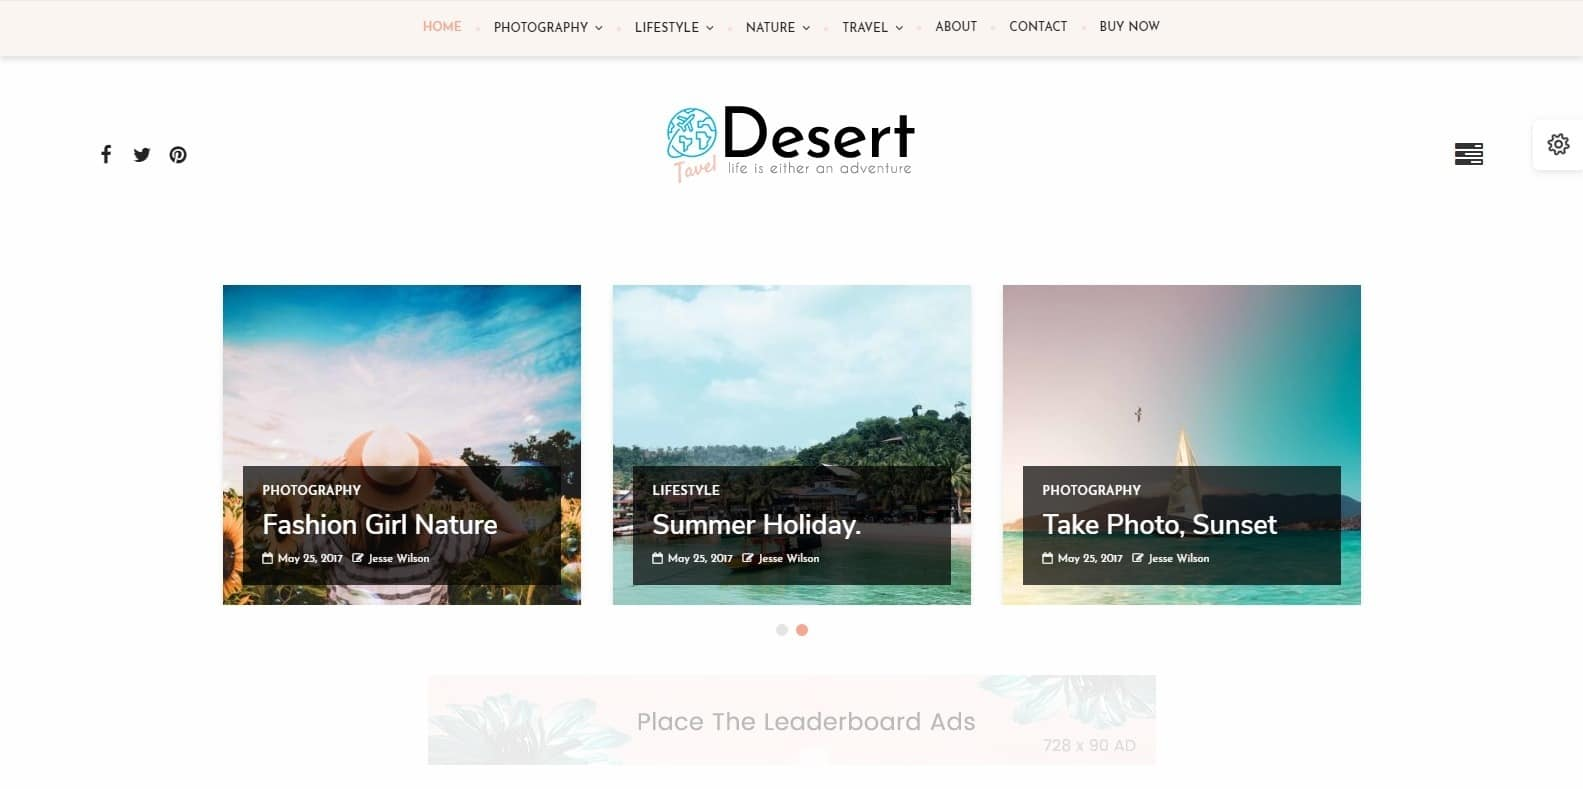 desert-food-blog-website-template